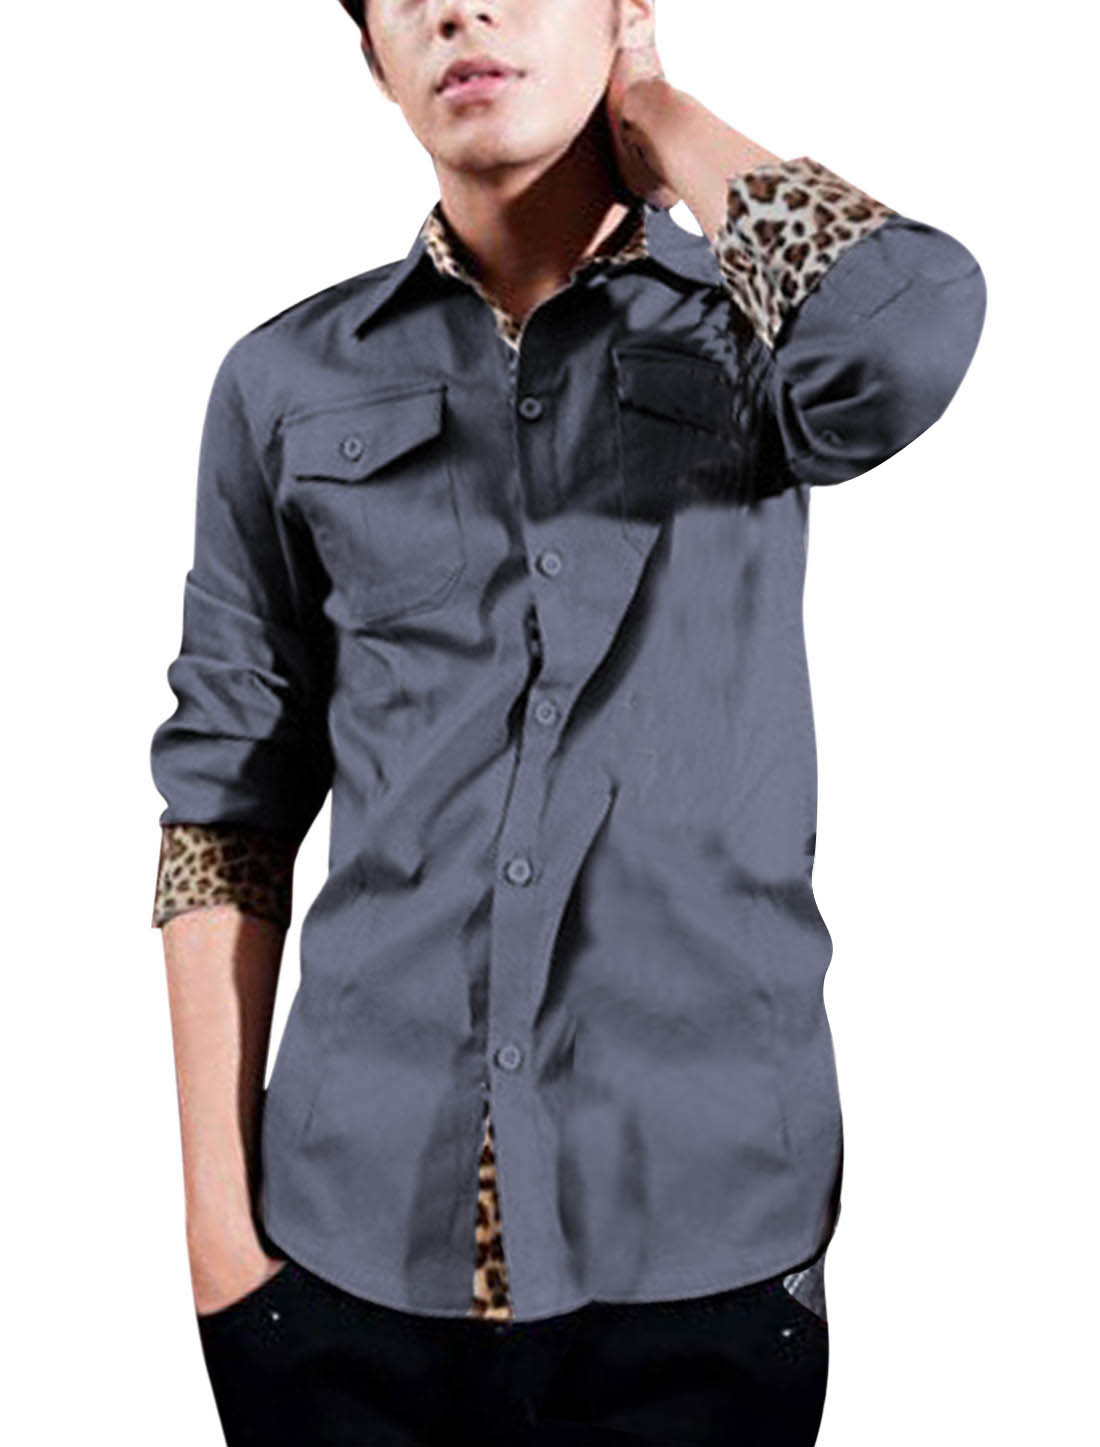 Men Point Collar Single Breasted Leopard Detail Casual Top Shirt Gray M